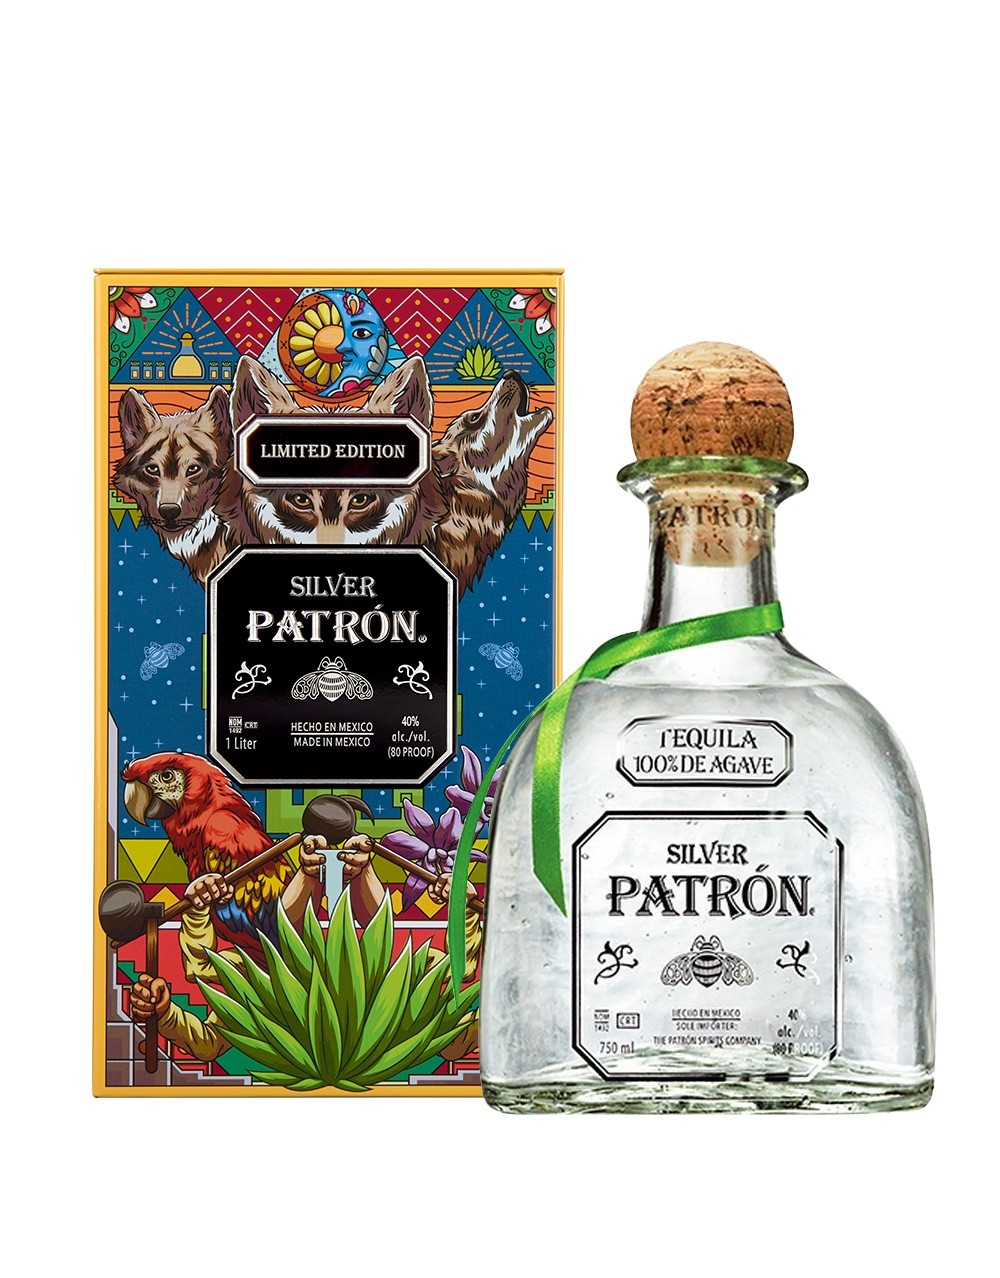 Patron Limited Edition 2018 Mexican Heritage Tin Buy